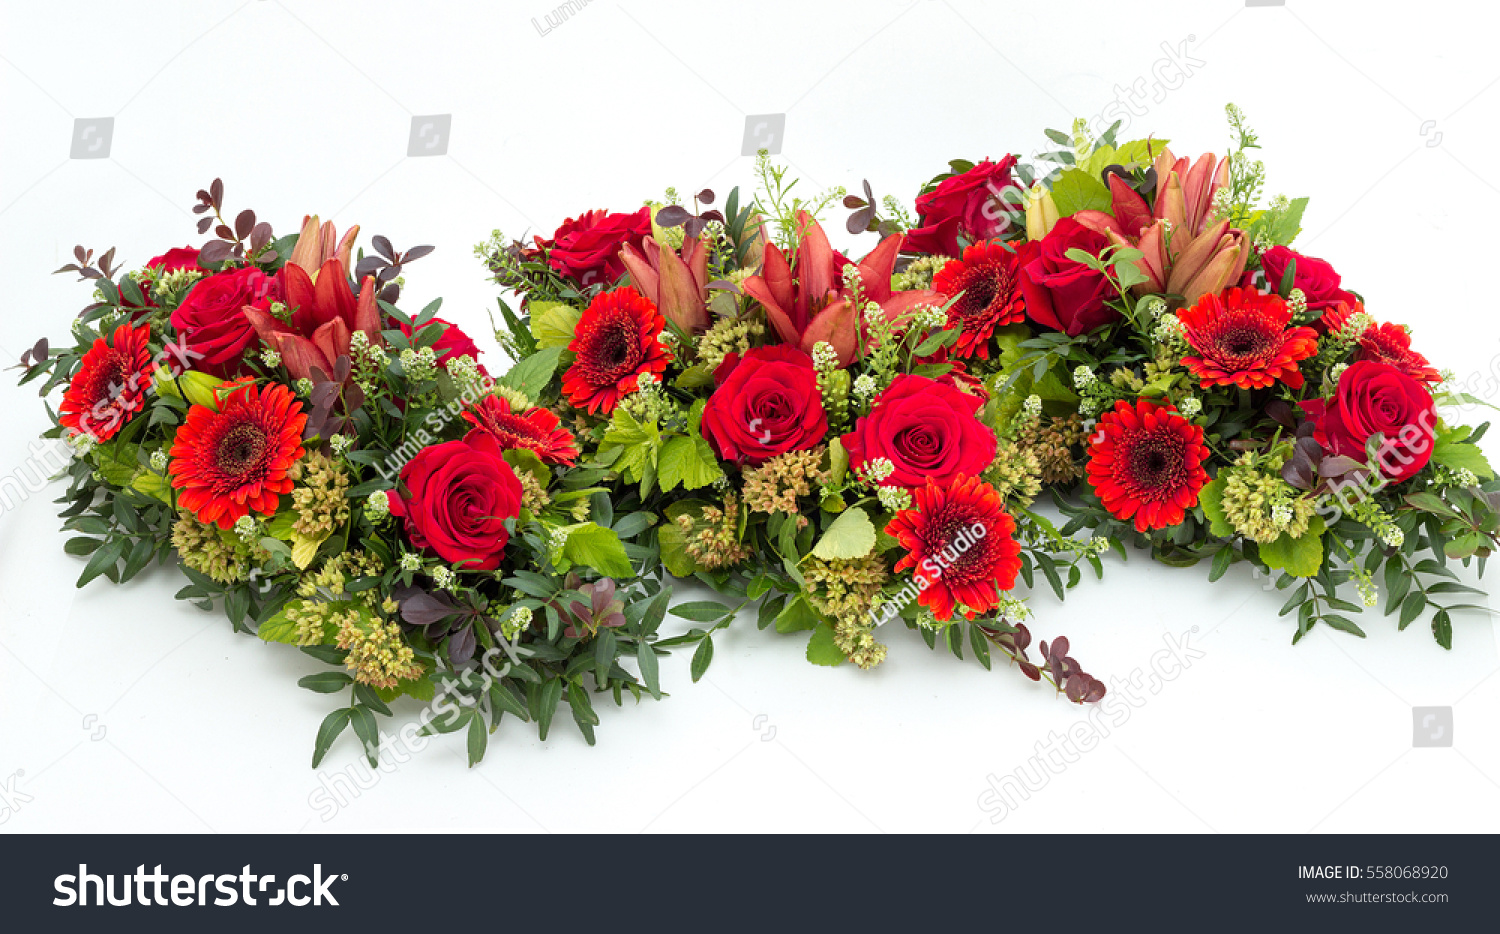 Funeral flower arrangement funeral isolated on stock photo edit now funeral flower arrangement for funeral isolated on a white background izmirmasajfo